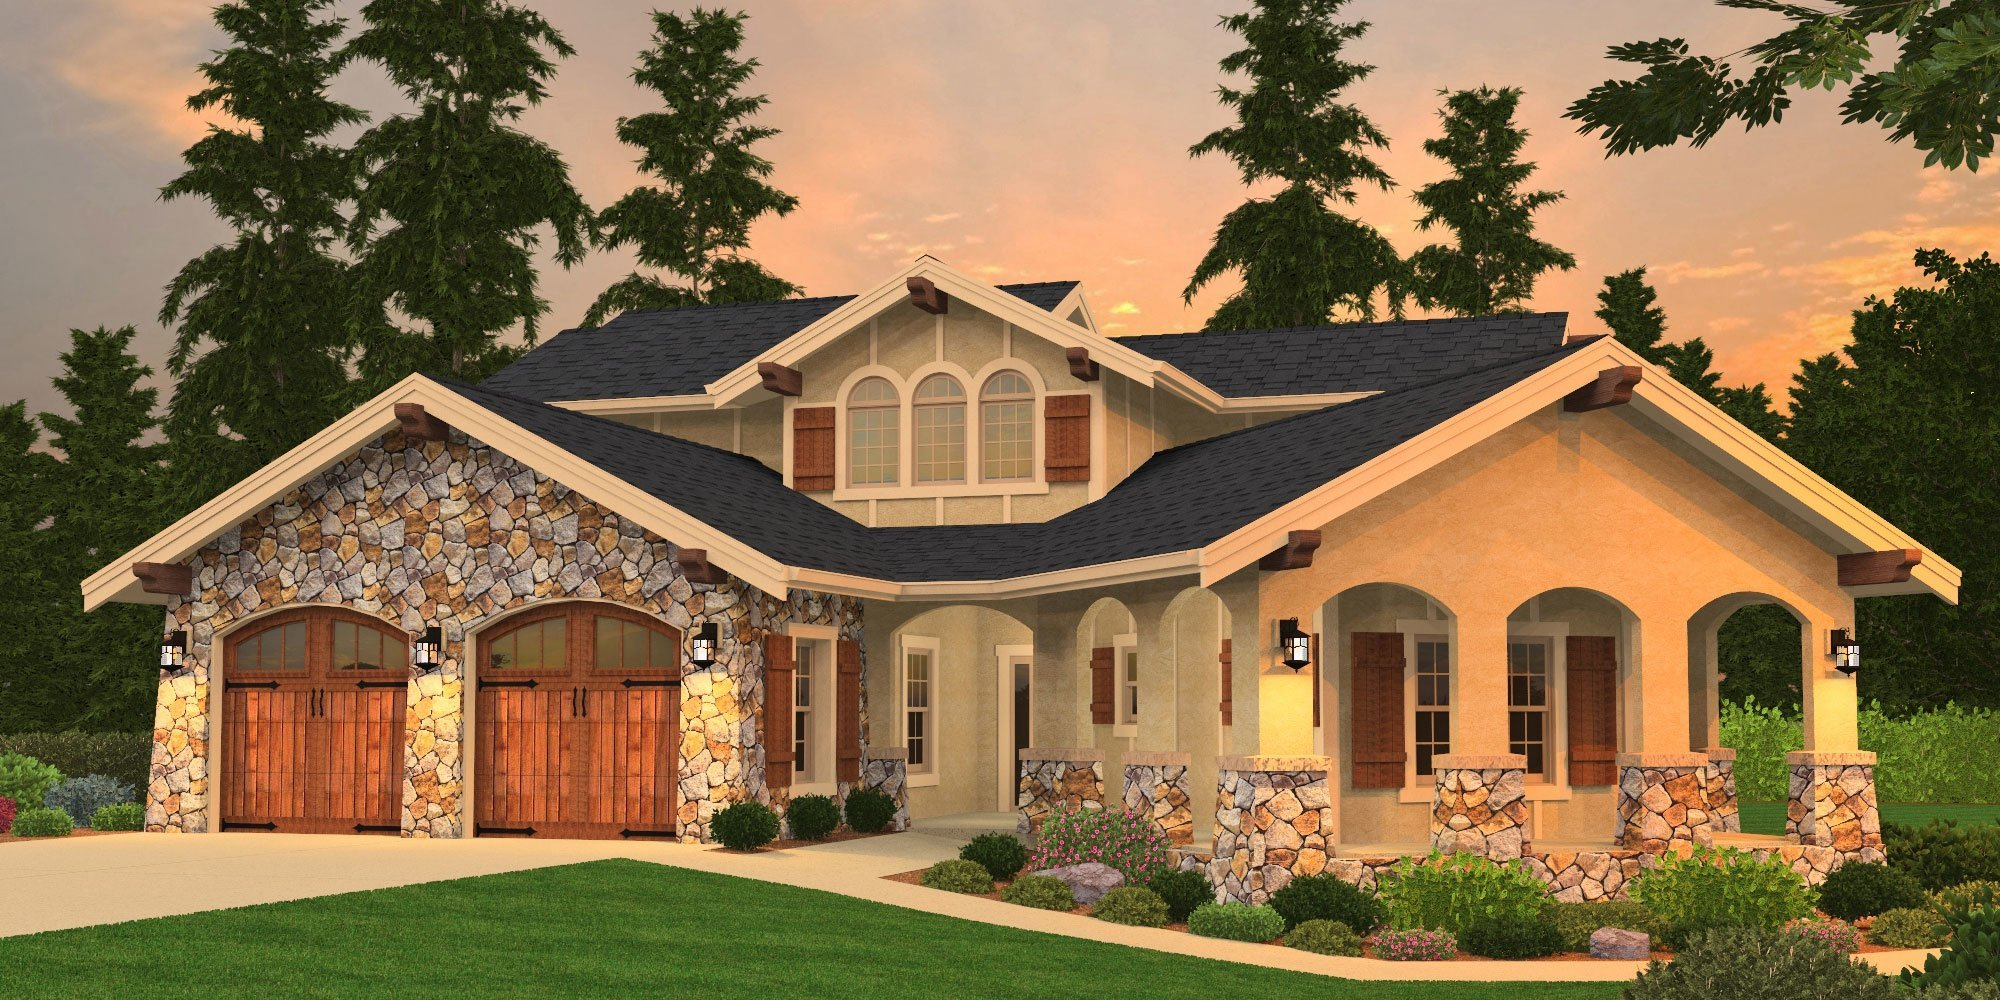 Modern House Plans Timeless Custom Home Designs with Photos